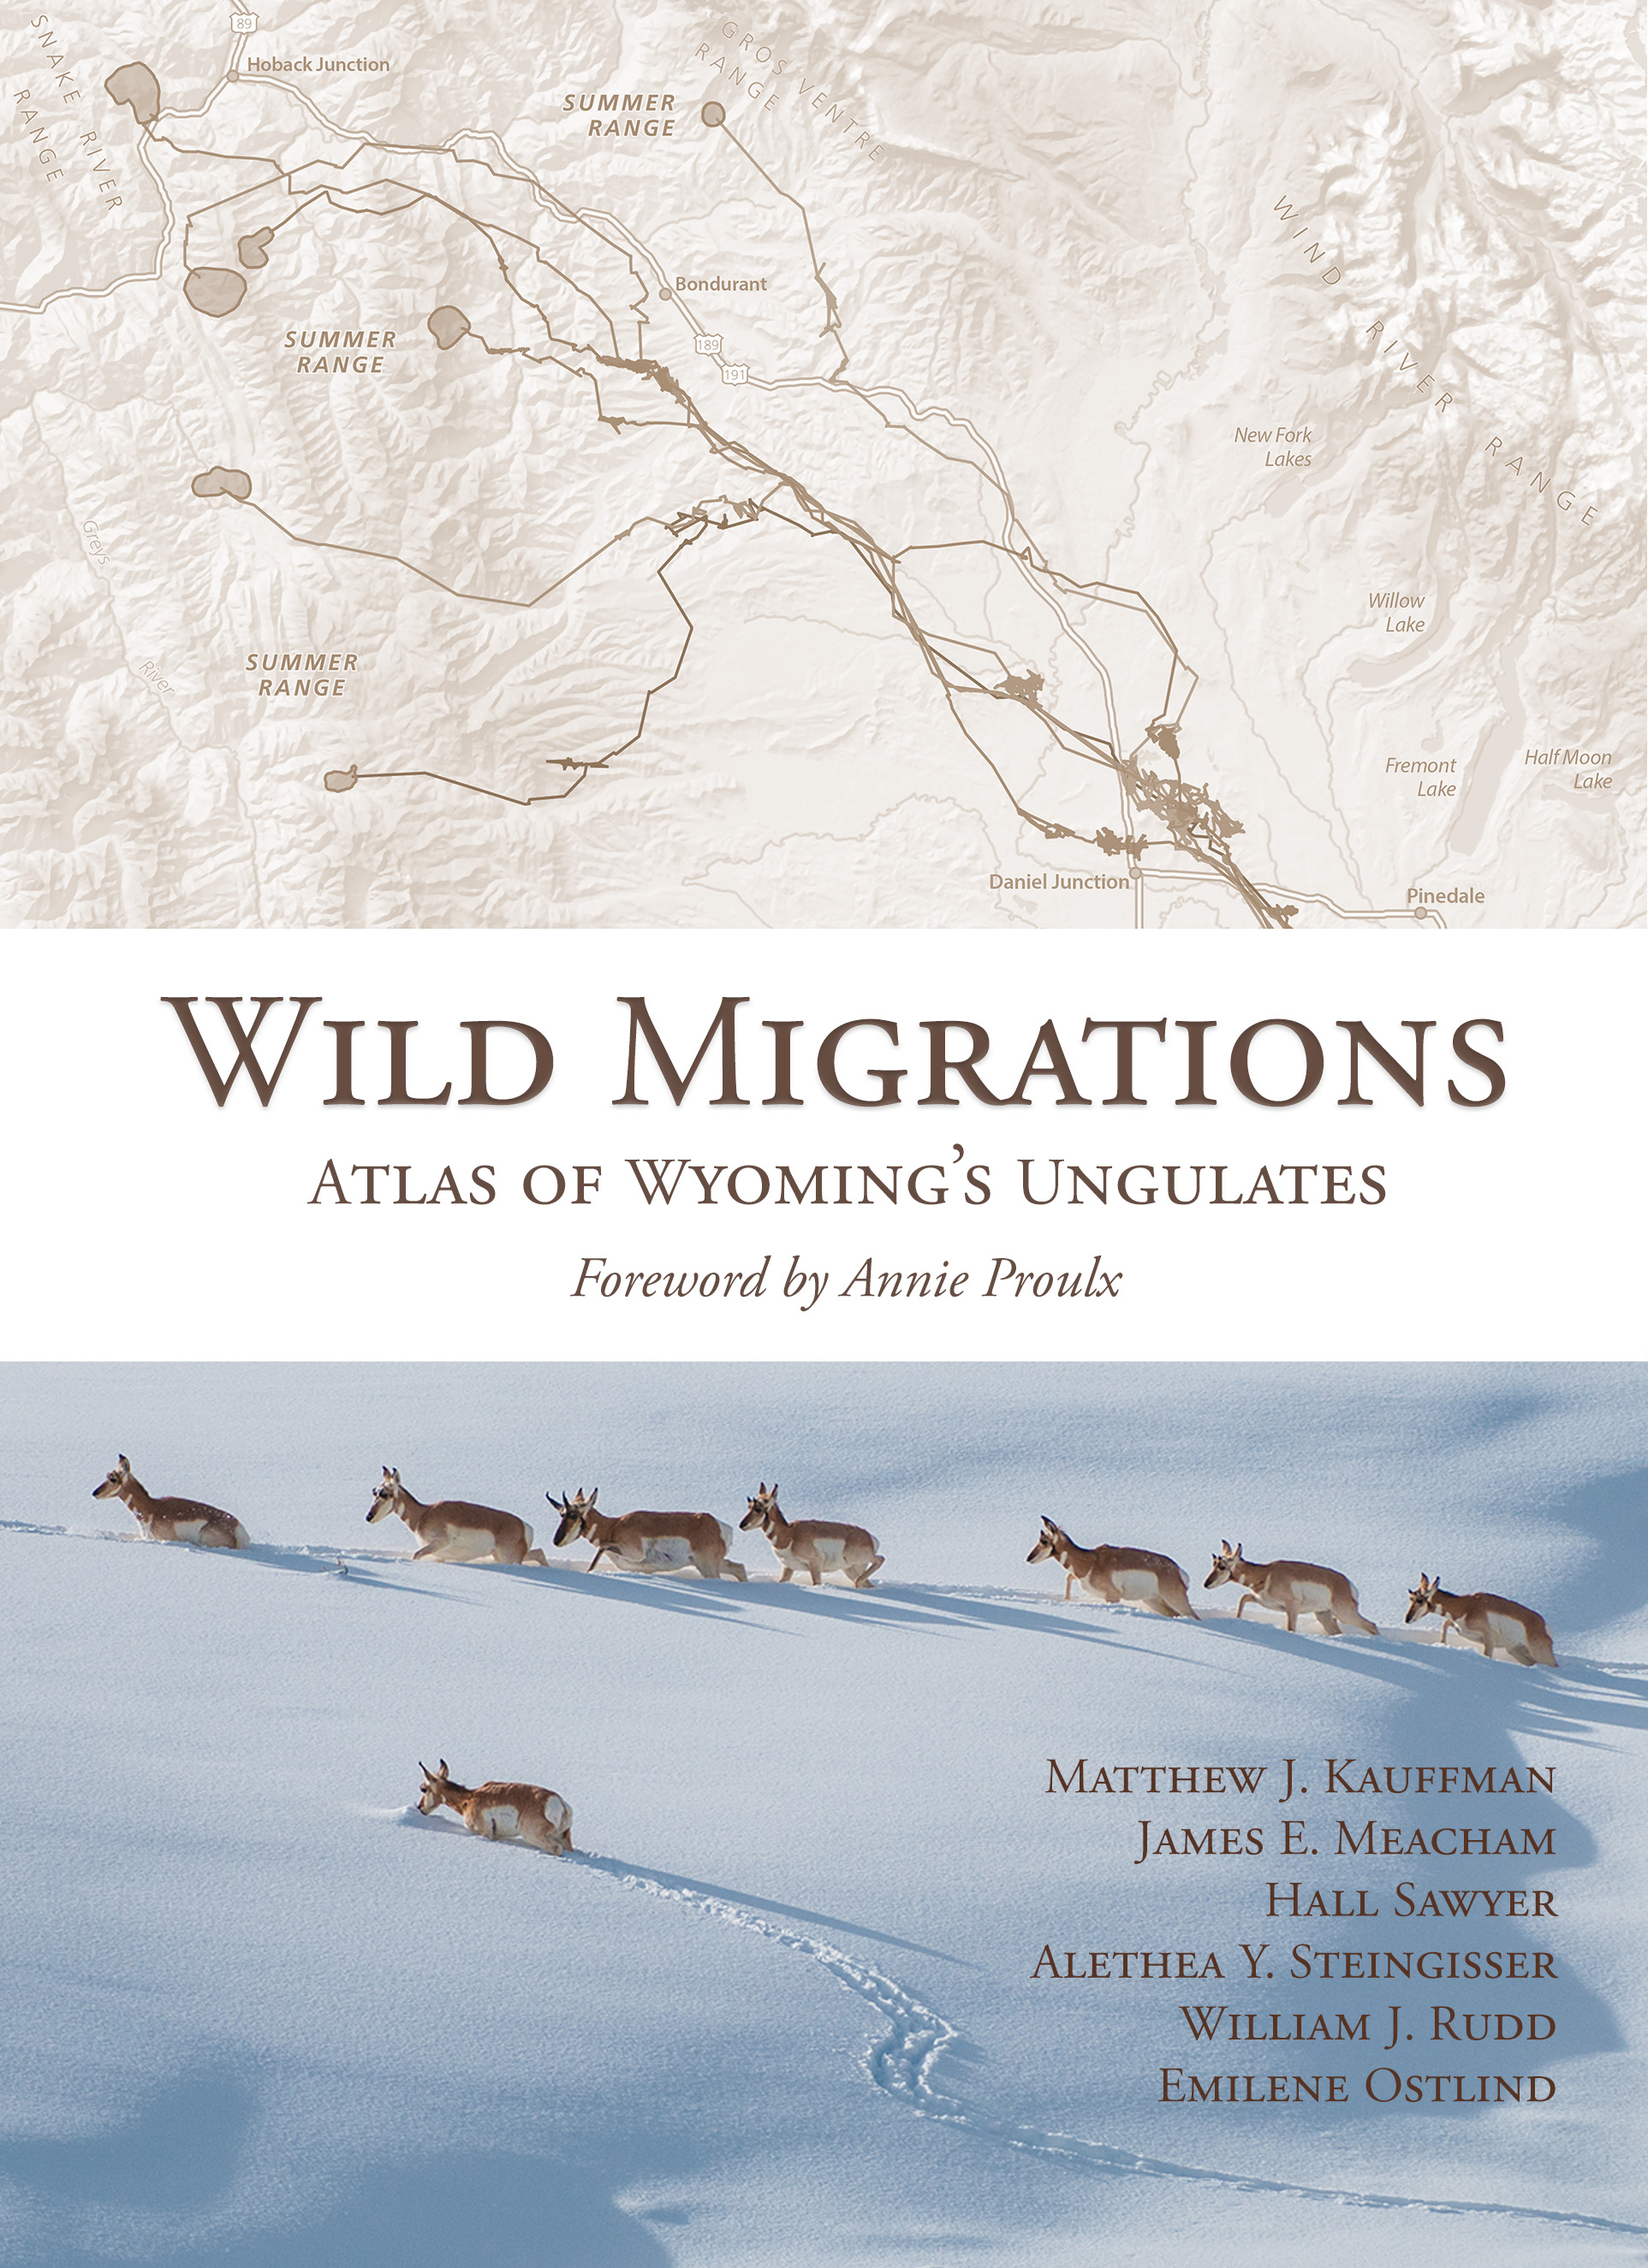 Wild Migrations: Atlas of Wyoming's Ungulates